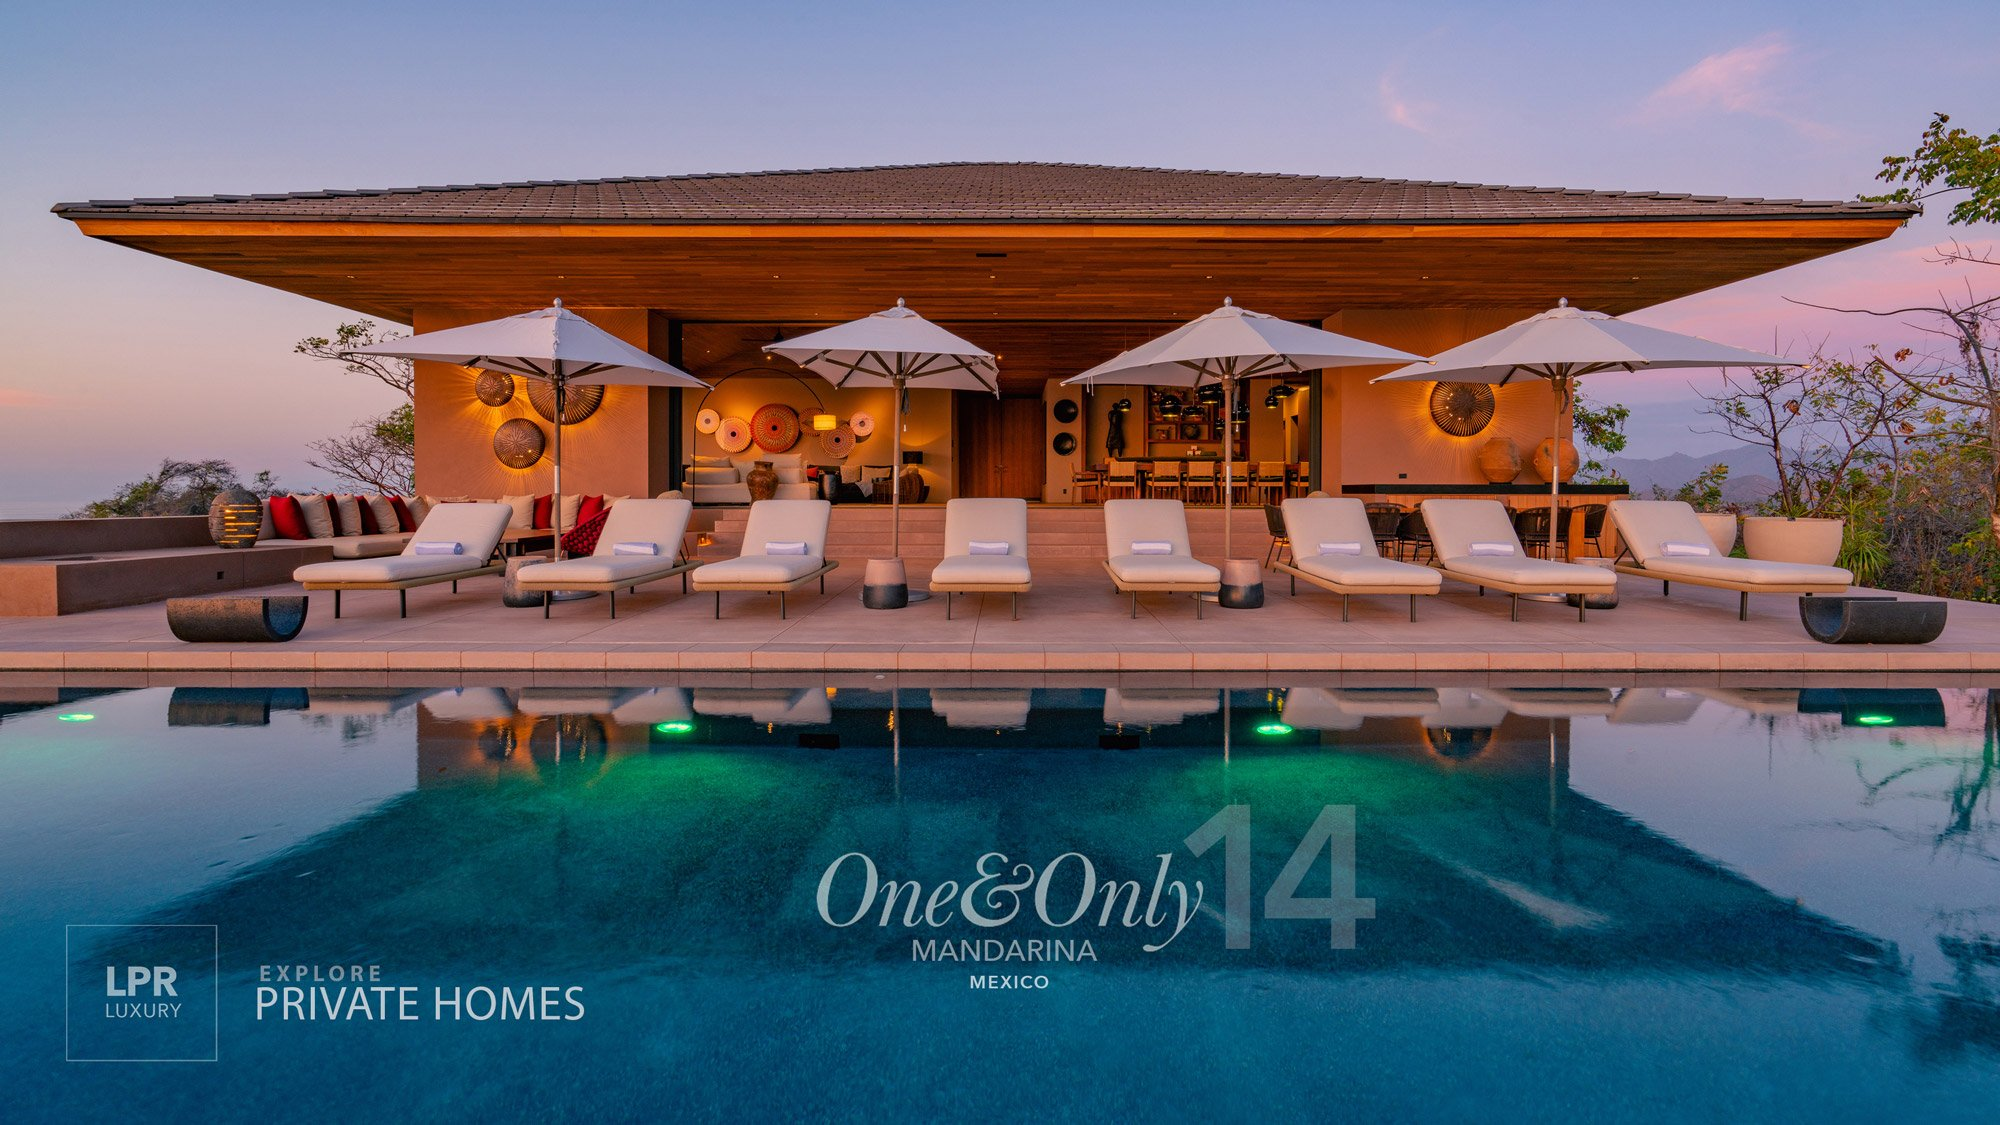 One&Only Villa 14 - Private Homes at One&Only Mandarina, Riviera Nayarit - One & Only Resort real estate